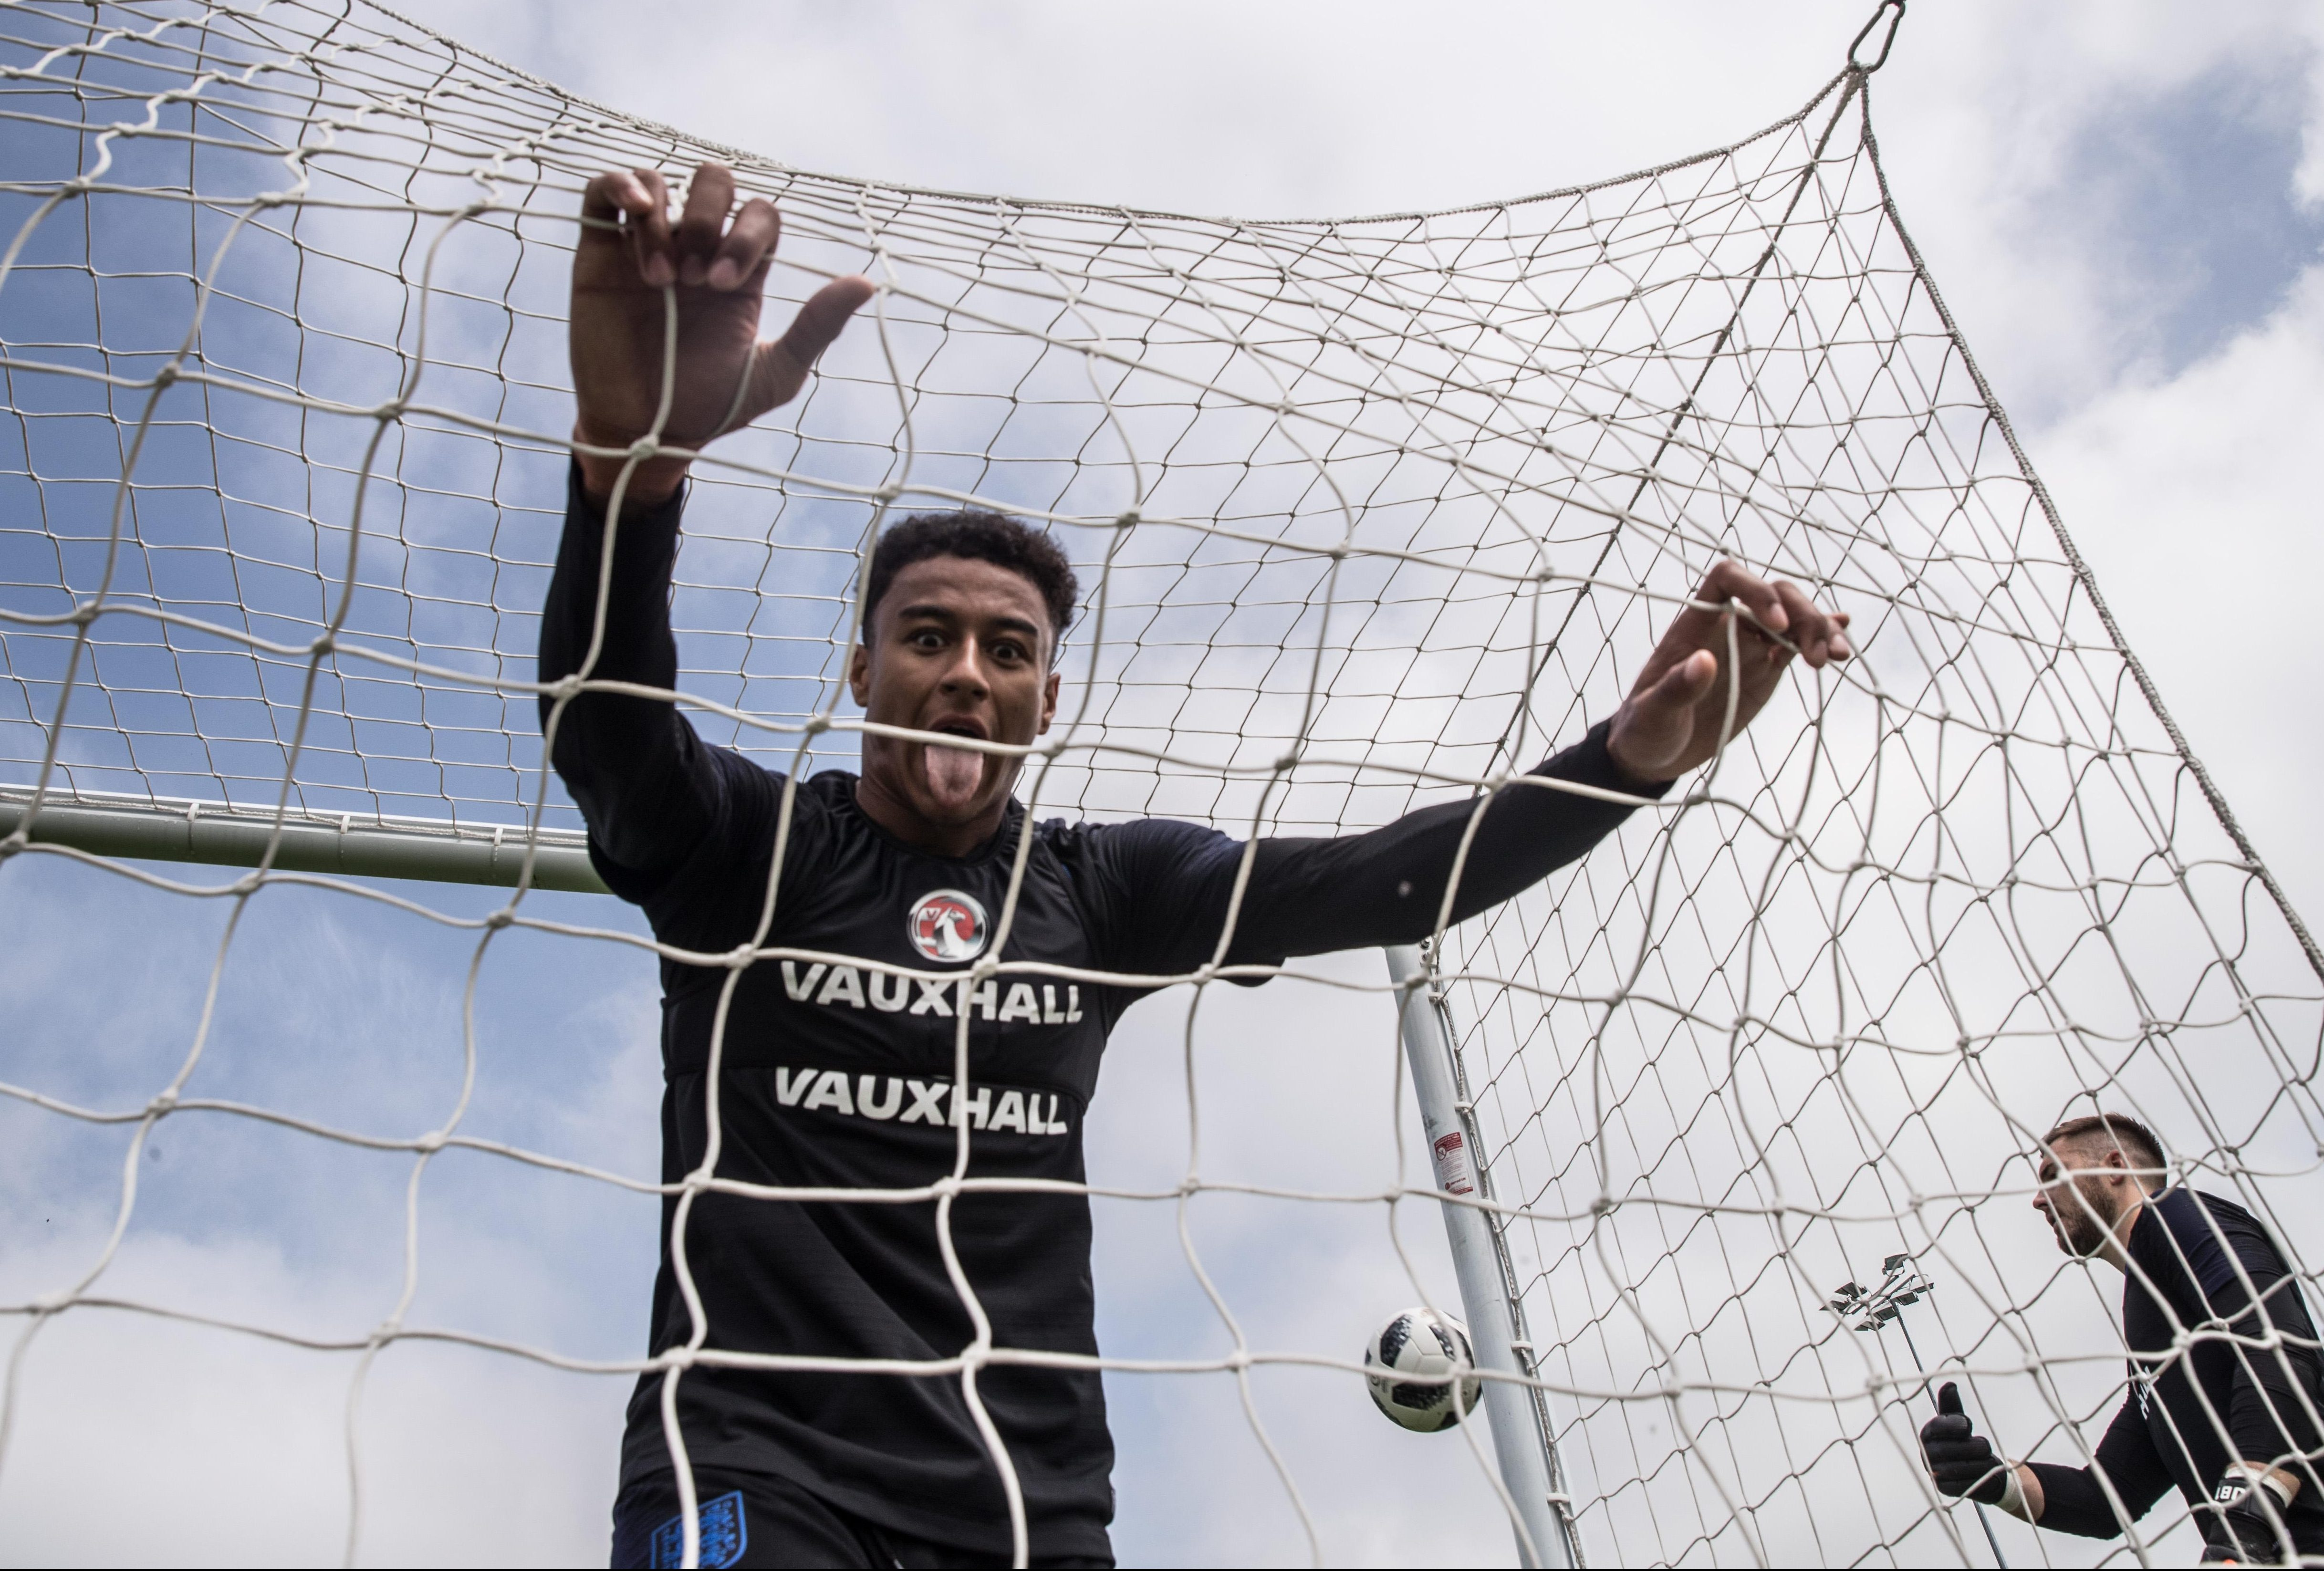 Jesse Lingard falls into the net after missing a chance to score during training